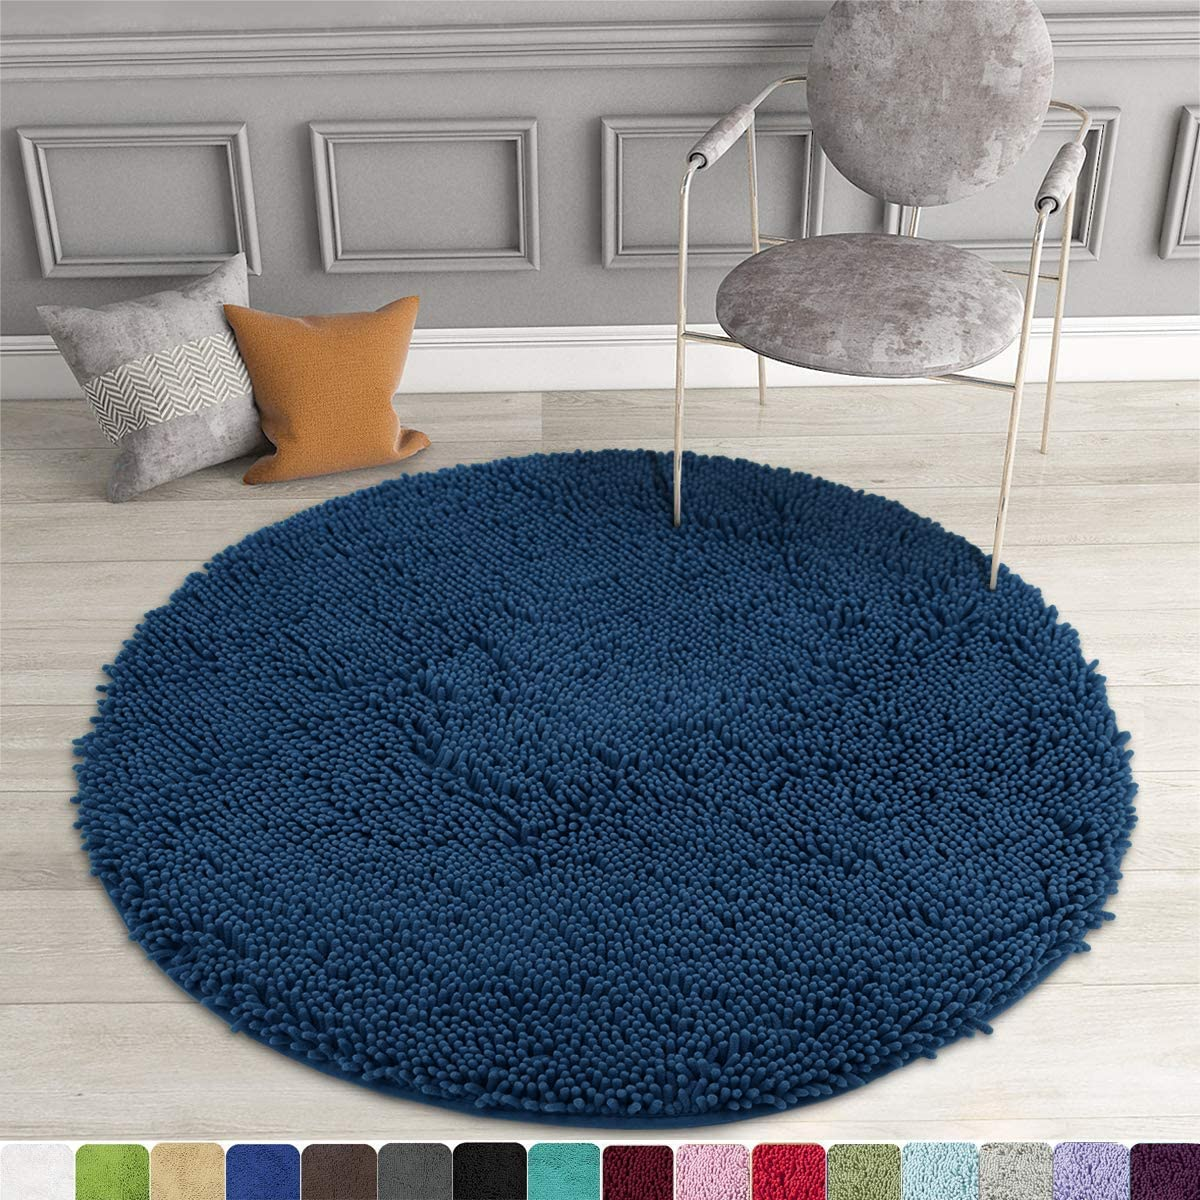 Amazon Com Mayshine Round Bath Mat Non Slip Chenille 3 Feet Shaggy Bathroom Rugs Extra Soft And Absorbent Perfect Plush Carpet For Living Room Bedroom Machine Wash Dry Dark Blue Home Kitchen